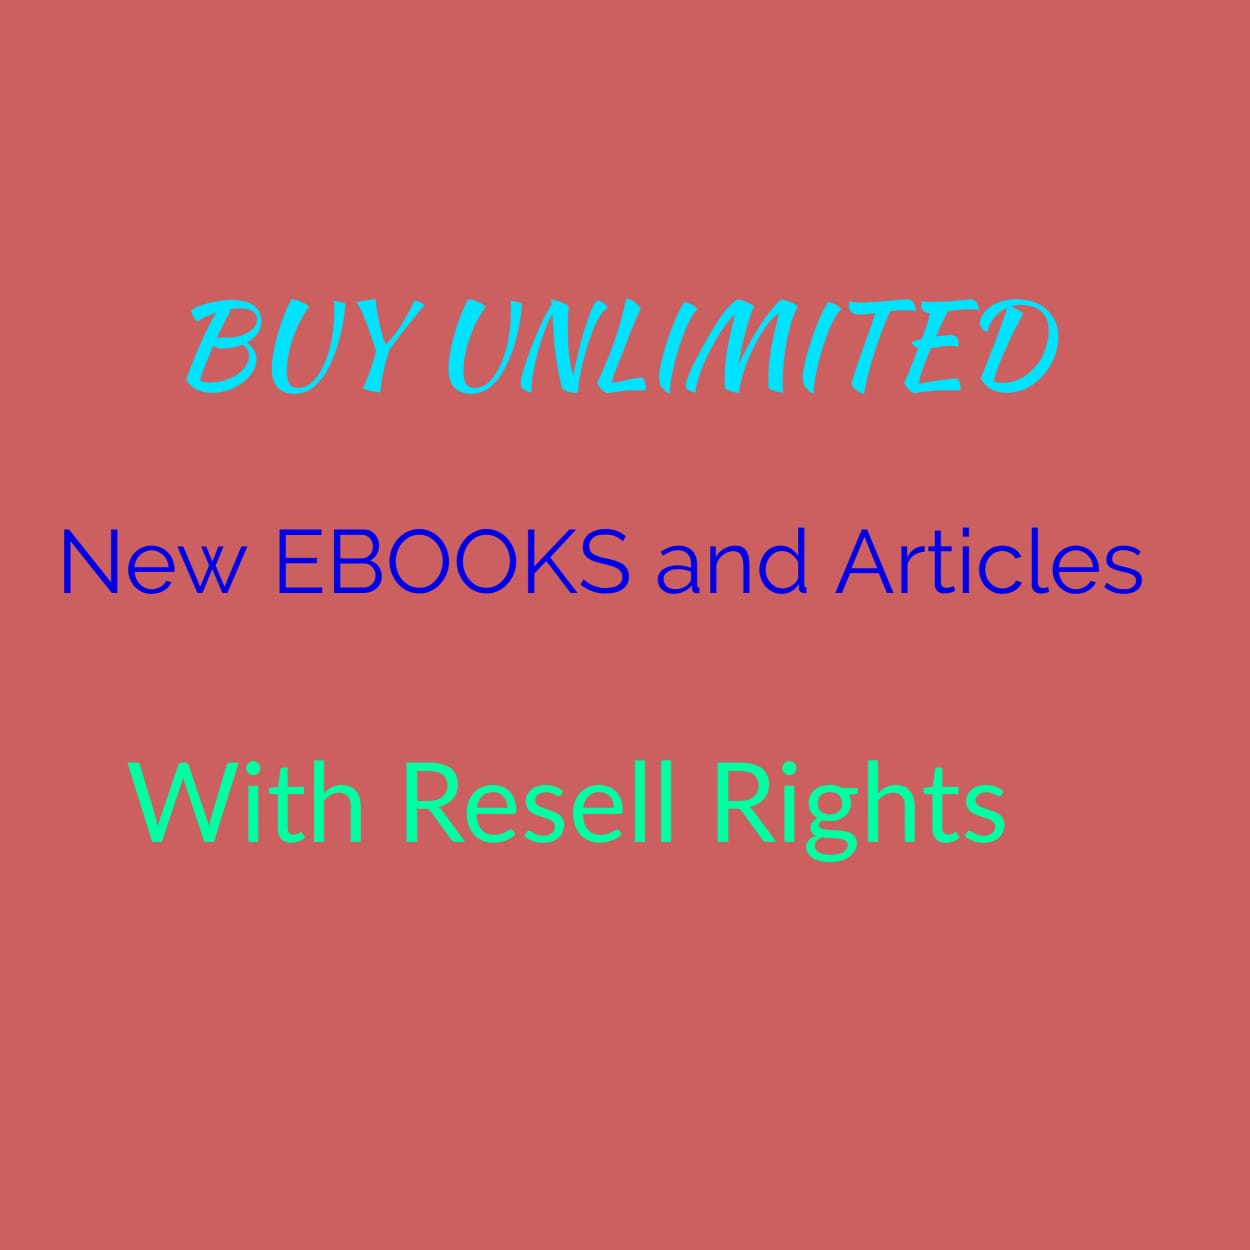 BUY UNLIMITED New EBooks and Articles With Resell Rights